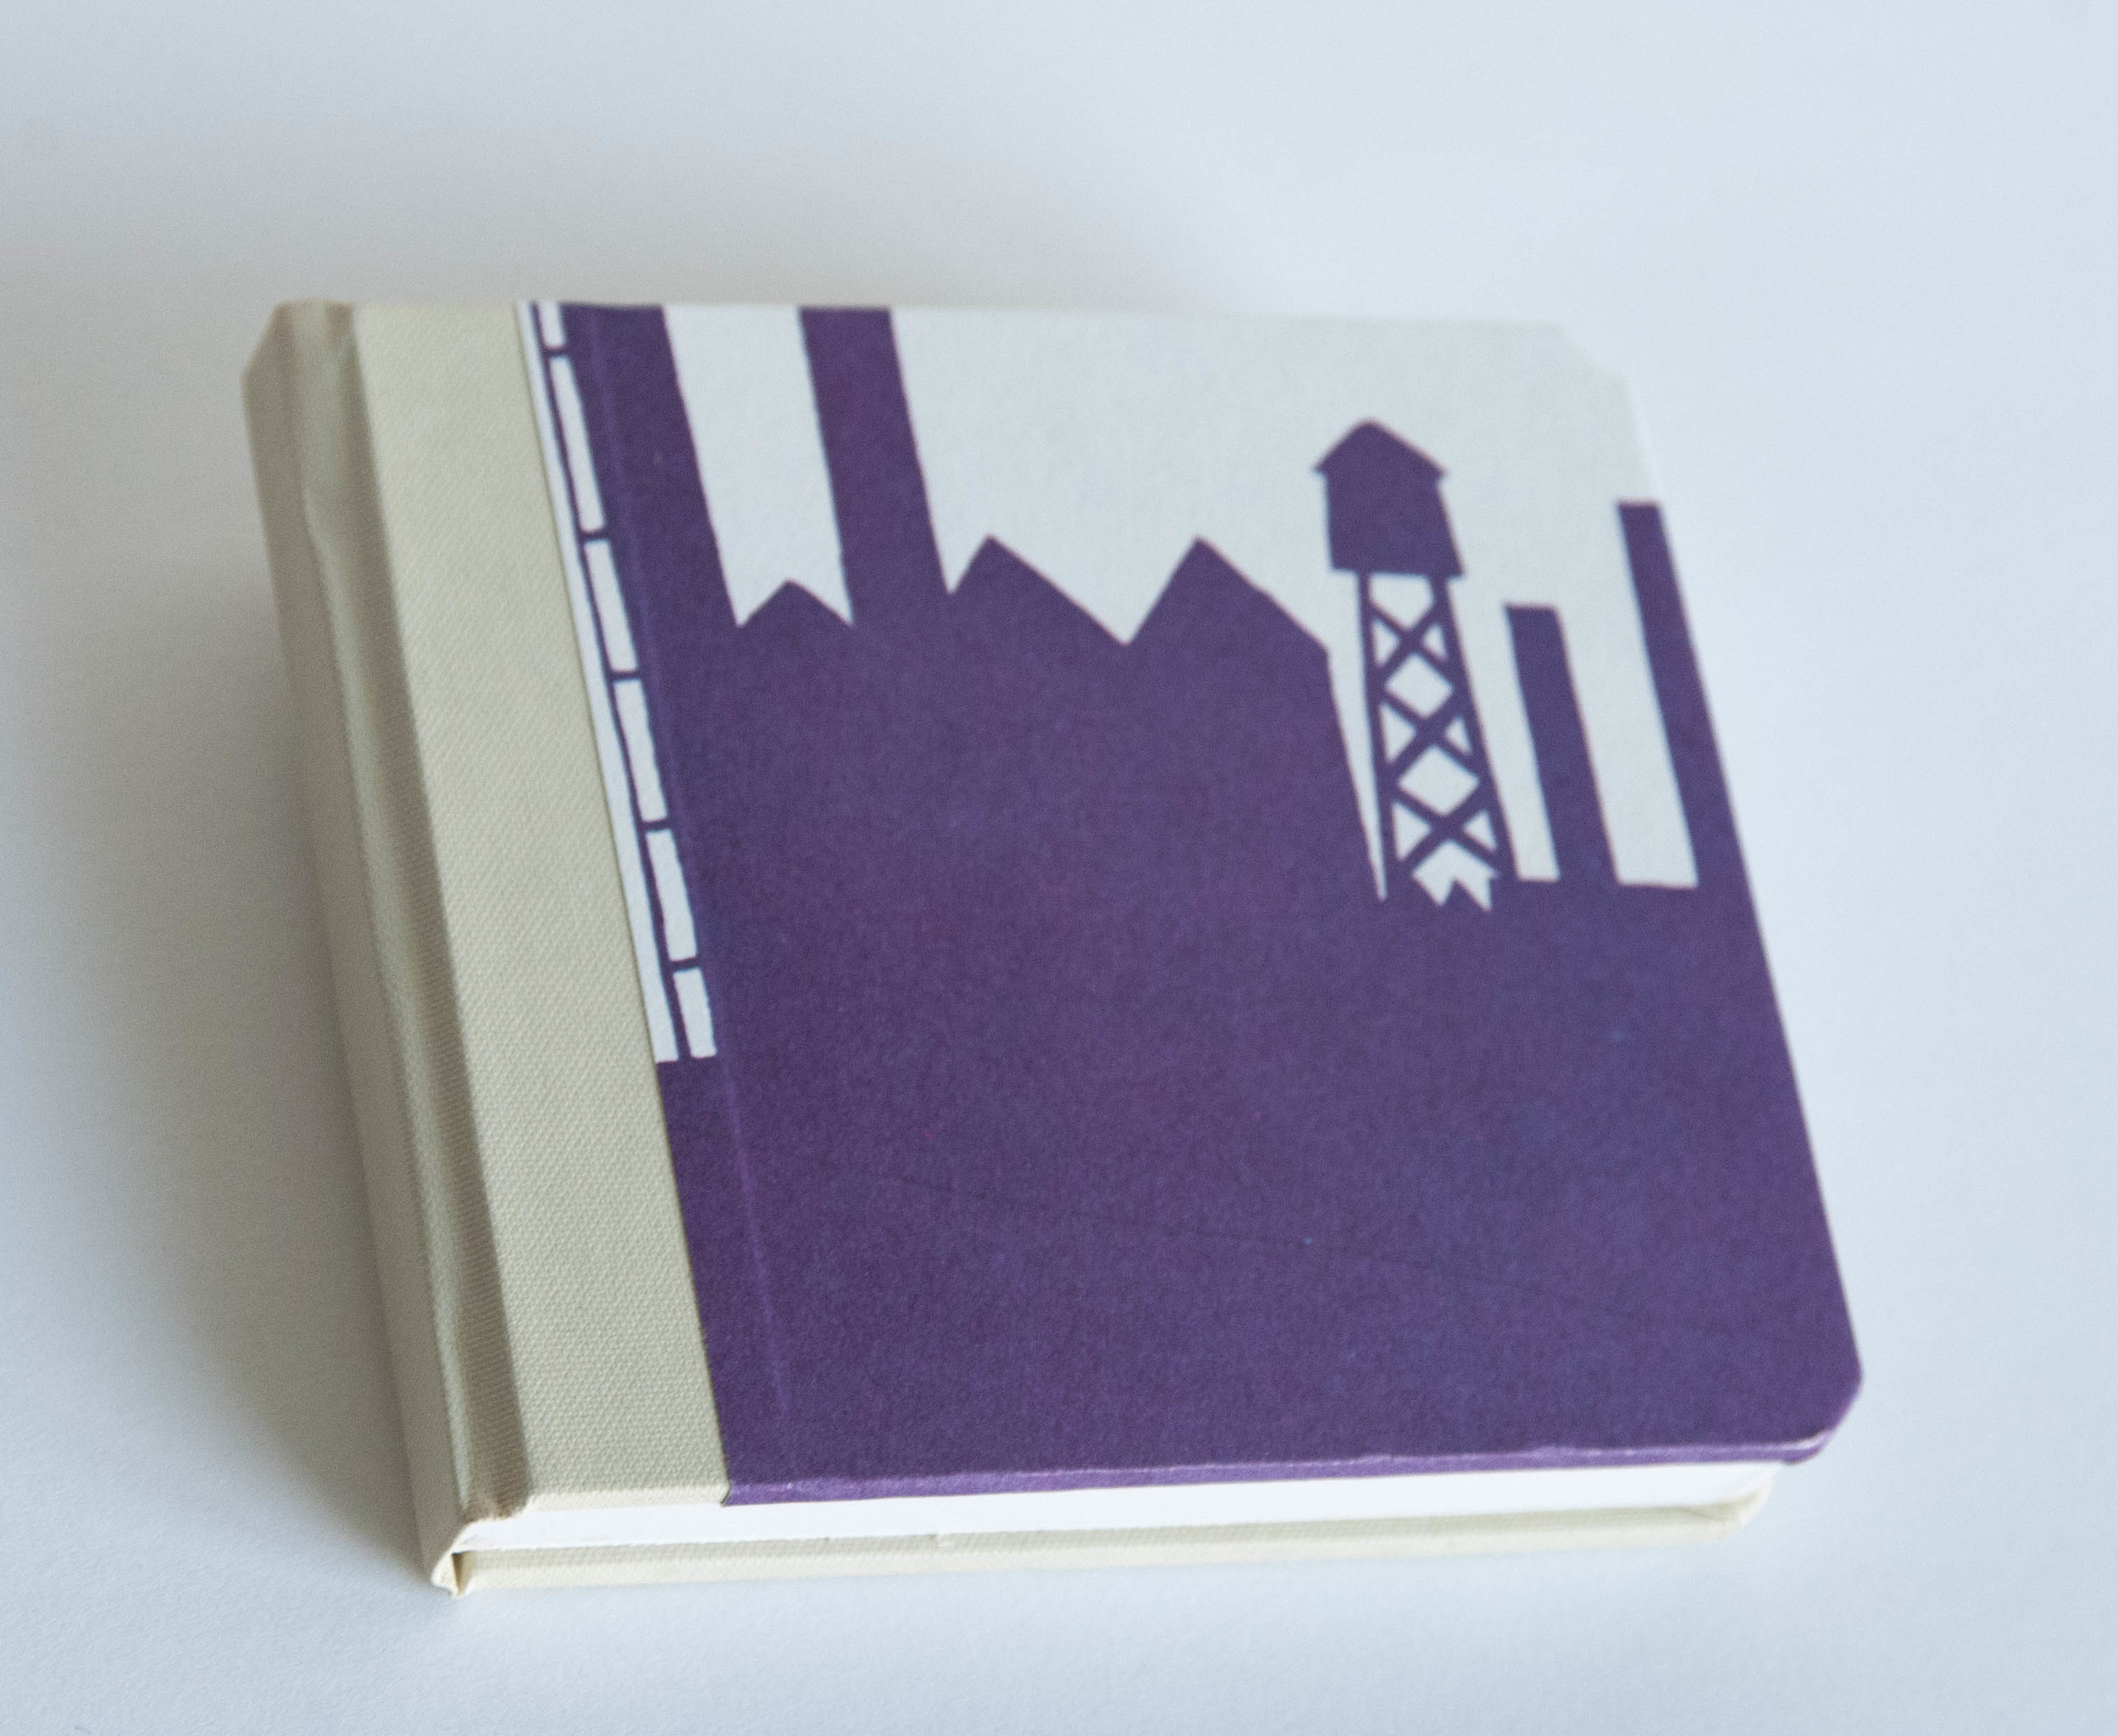 purple book.jpg